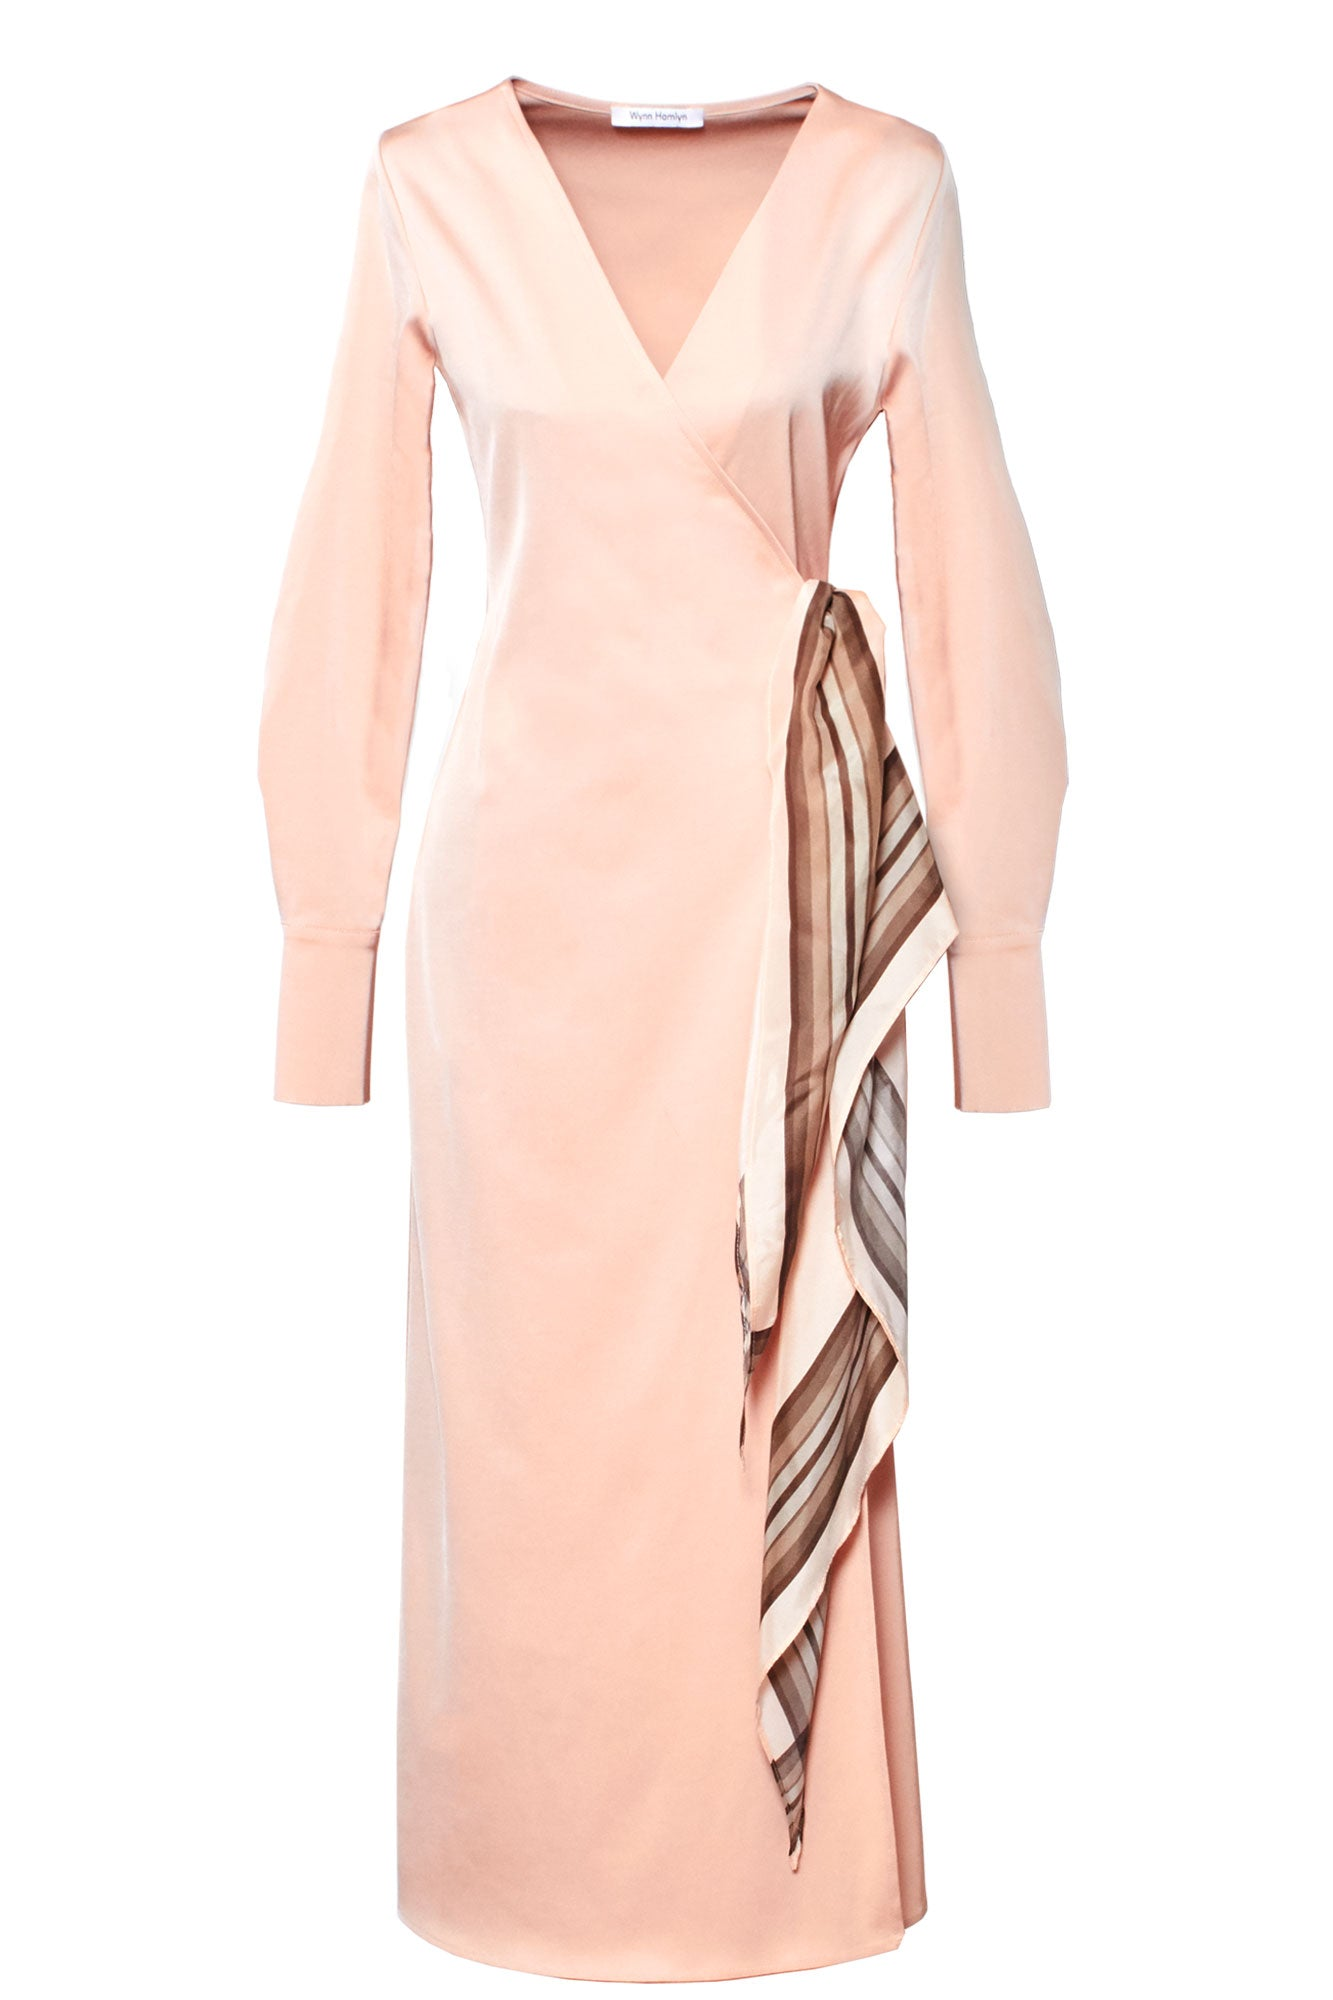 Scarf Wrap Dress - Blush